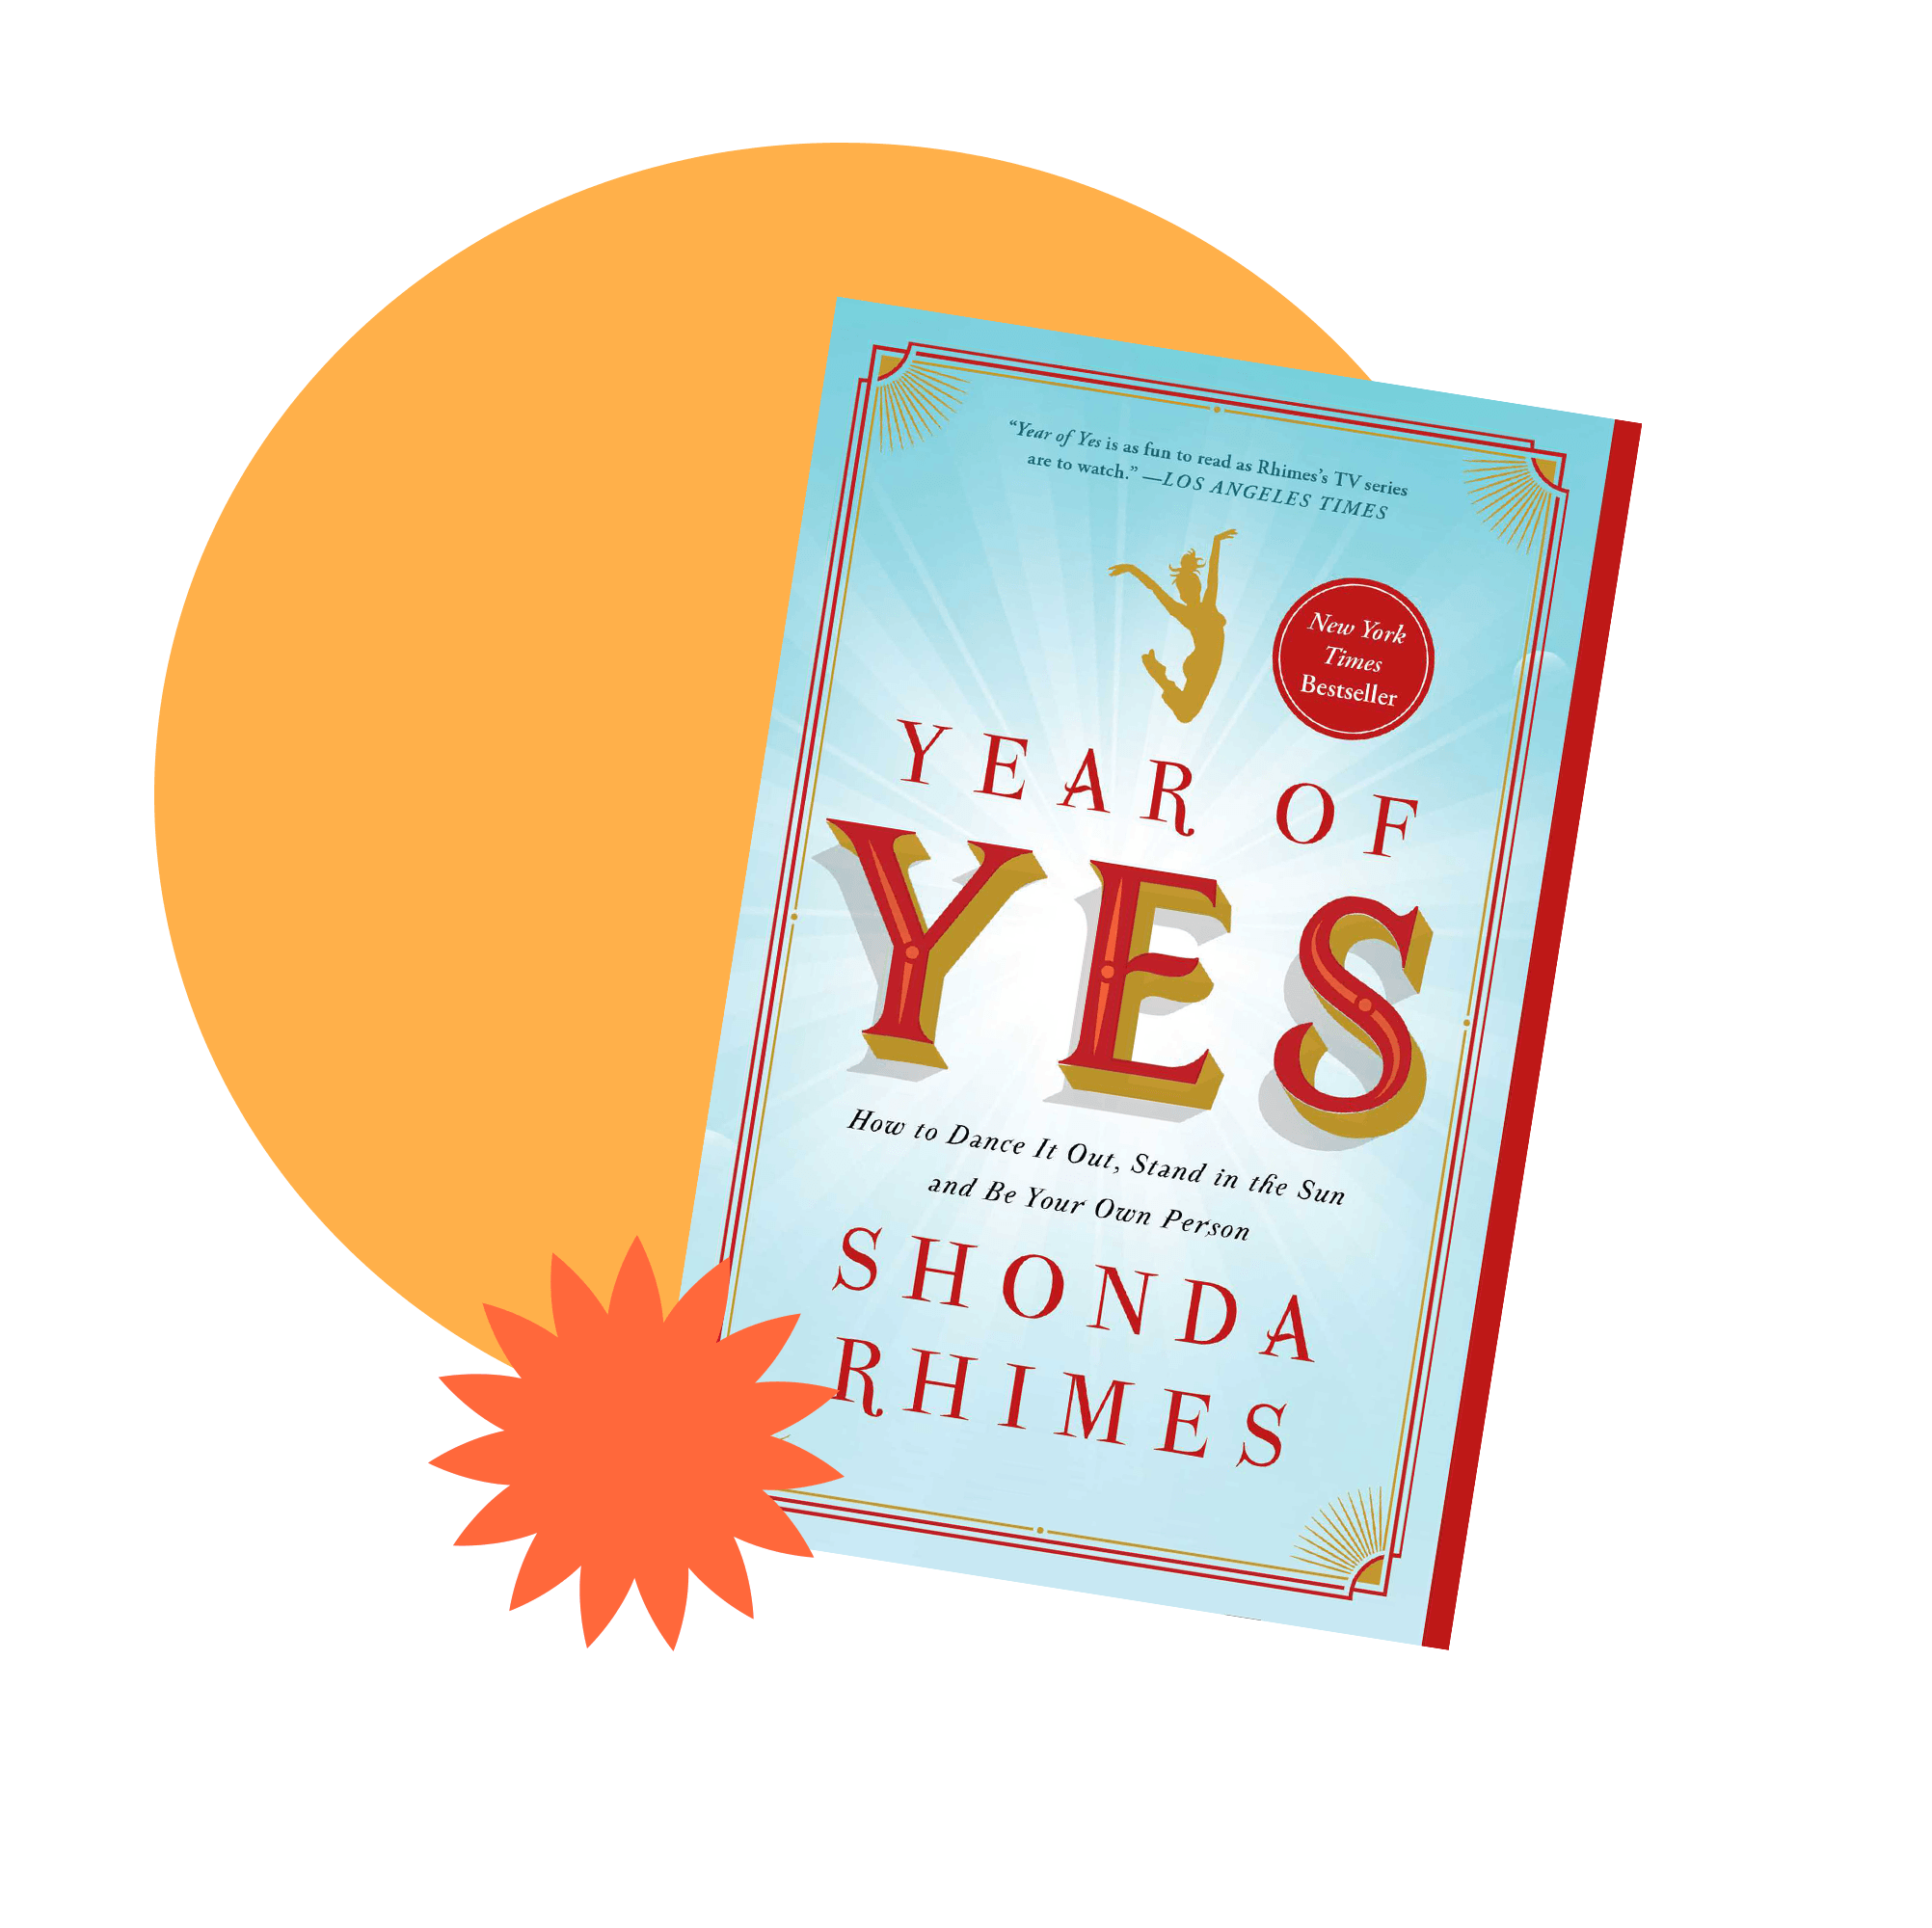 Book jacket cover for Year of Yes by Shonda Rhimes